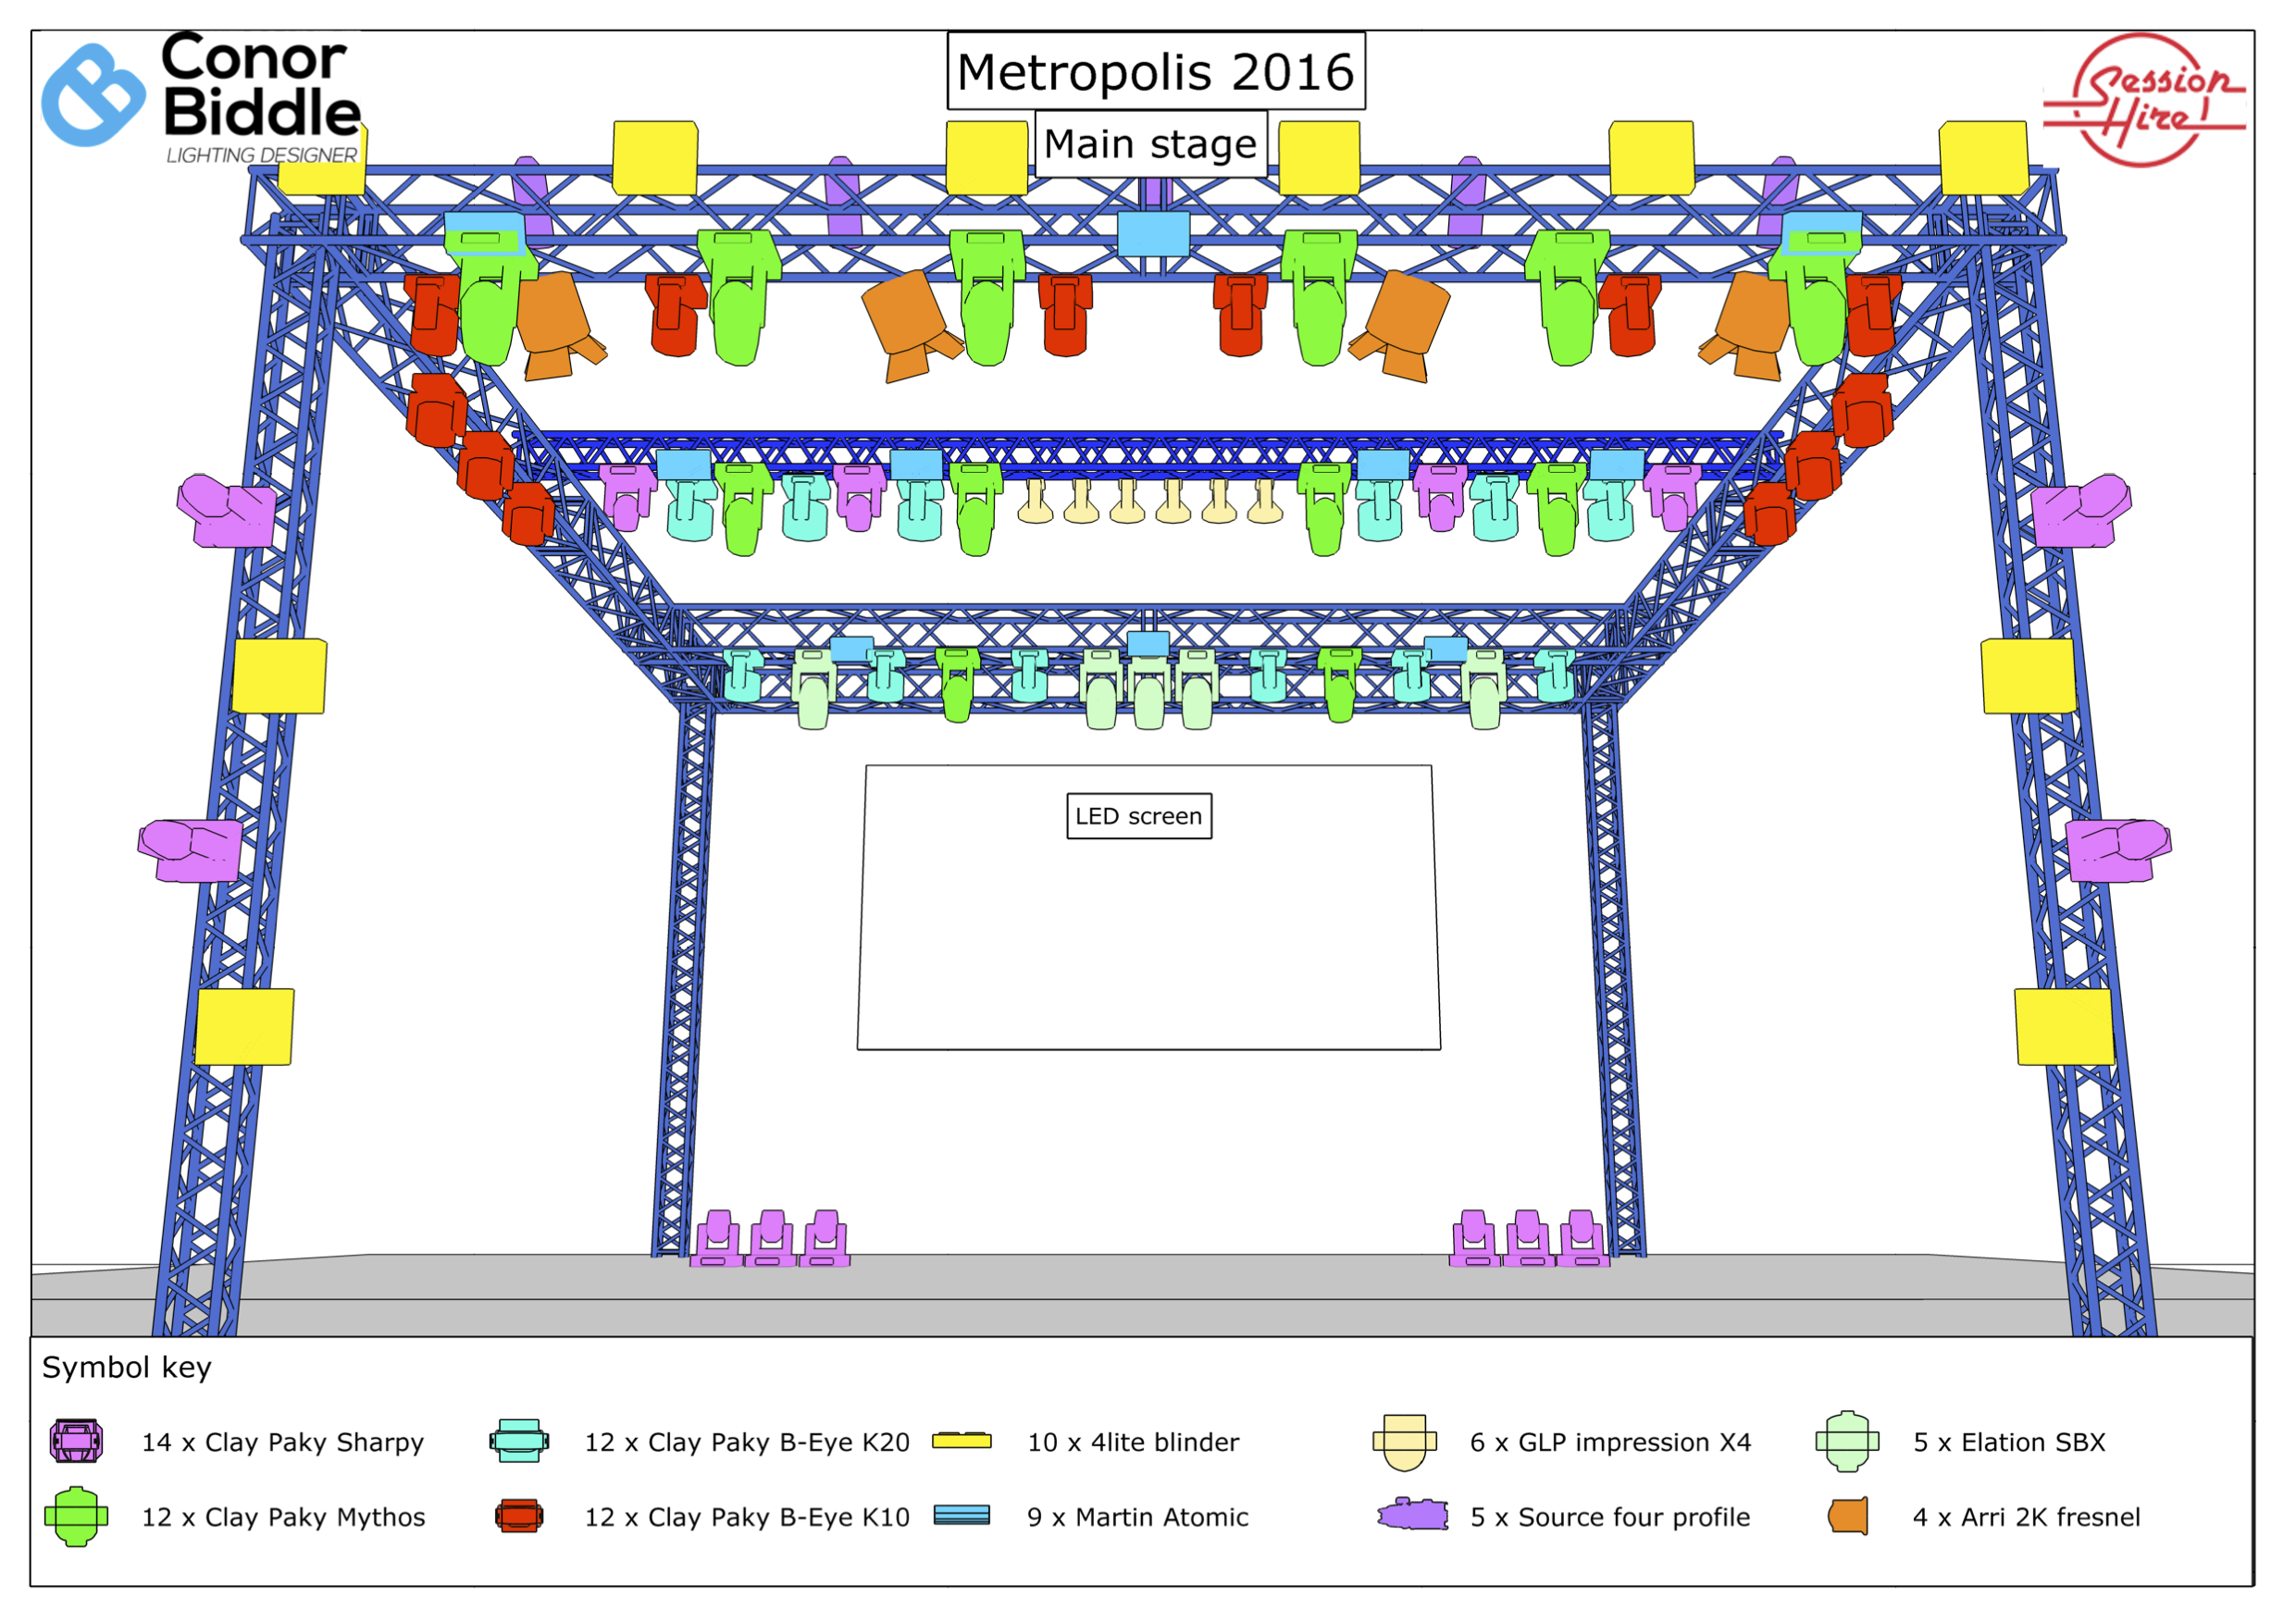 metropolis-main-stage-lx-final-perspective